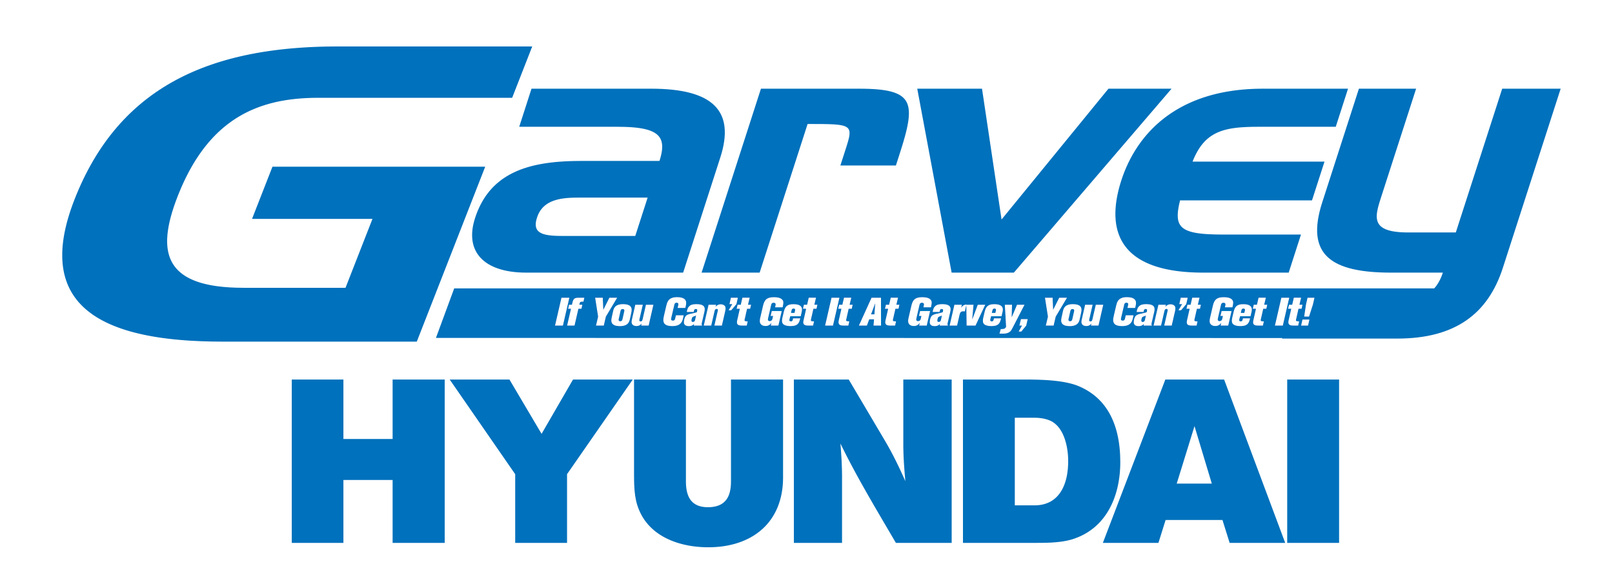 Garvey Hyundai North - Plattsburgh, NY: Read Consumer reviews ...